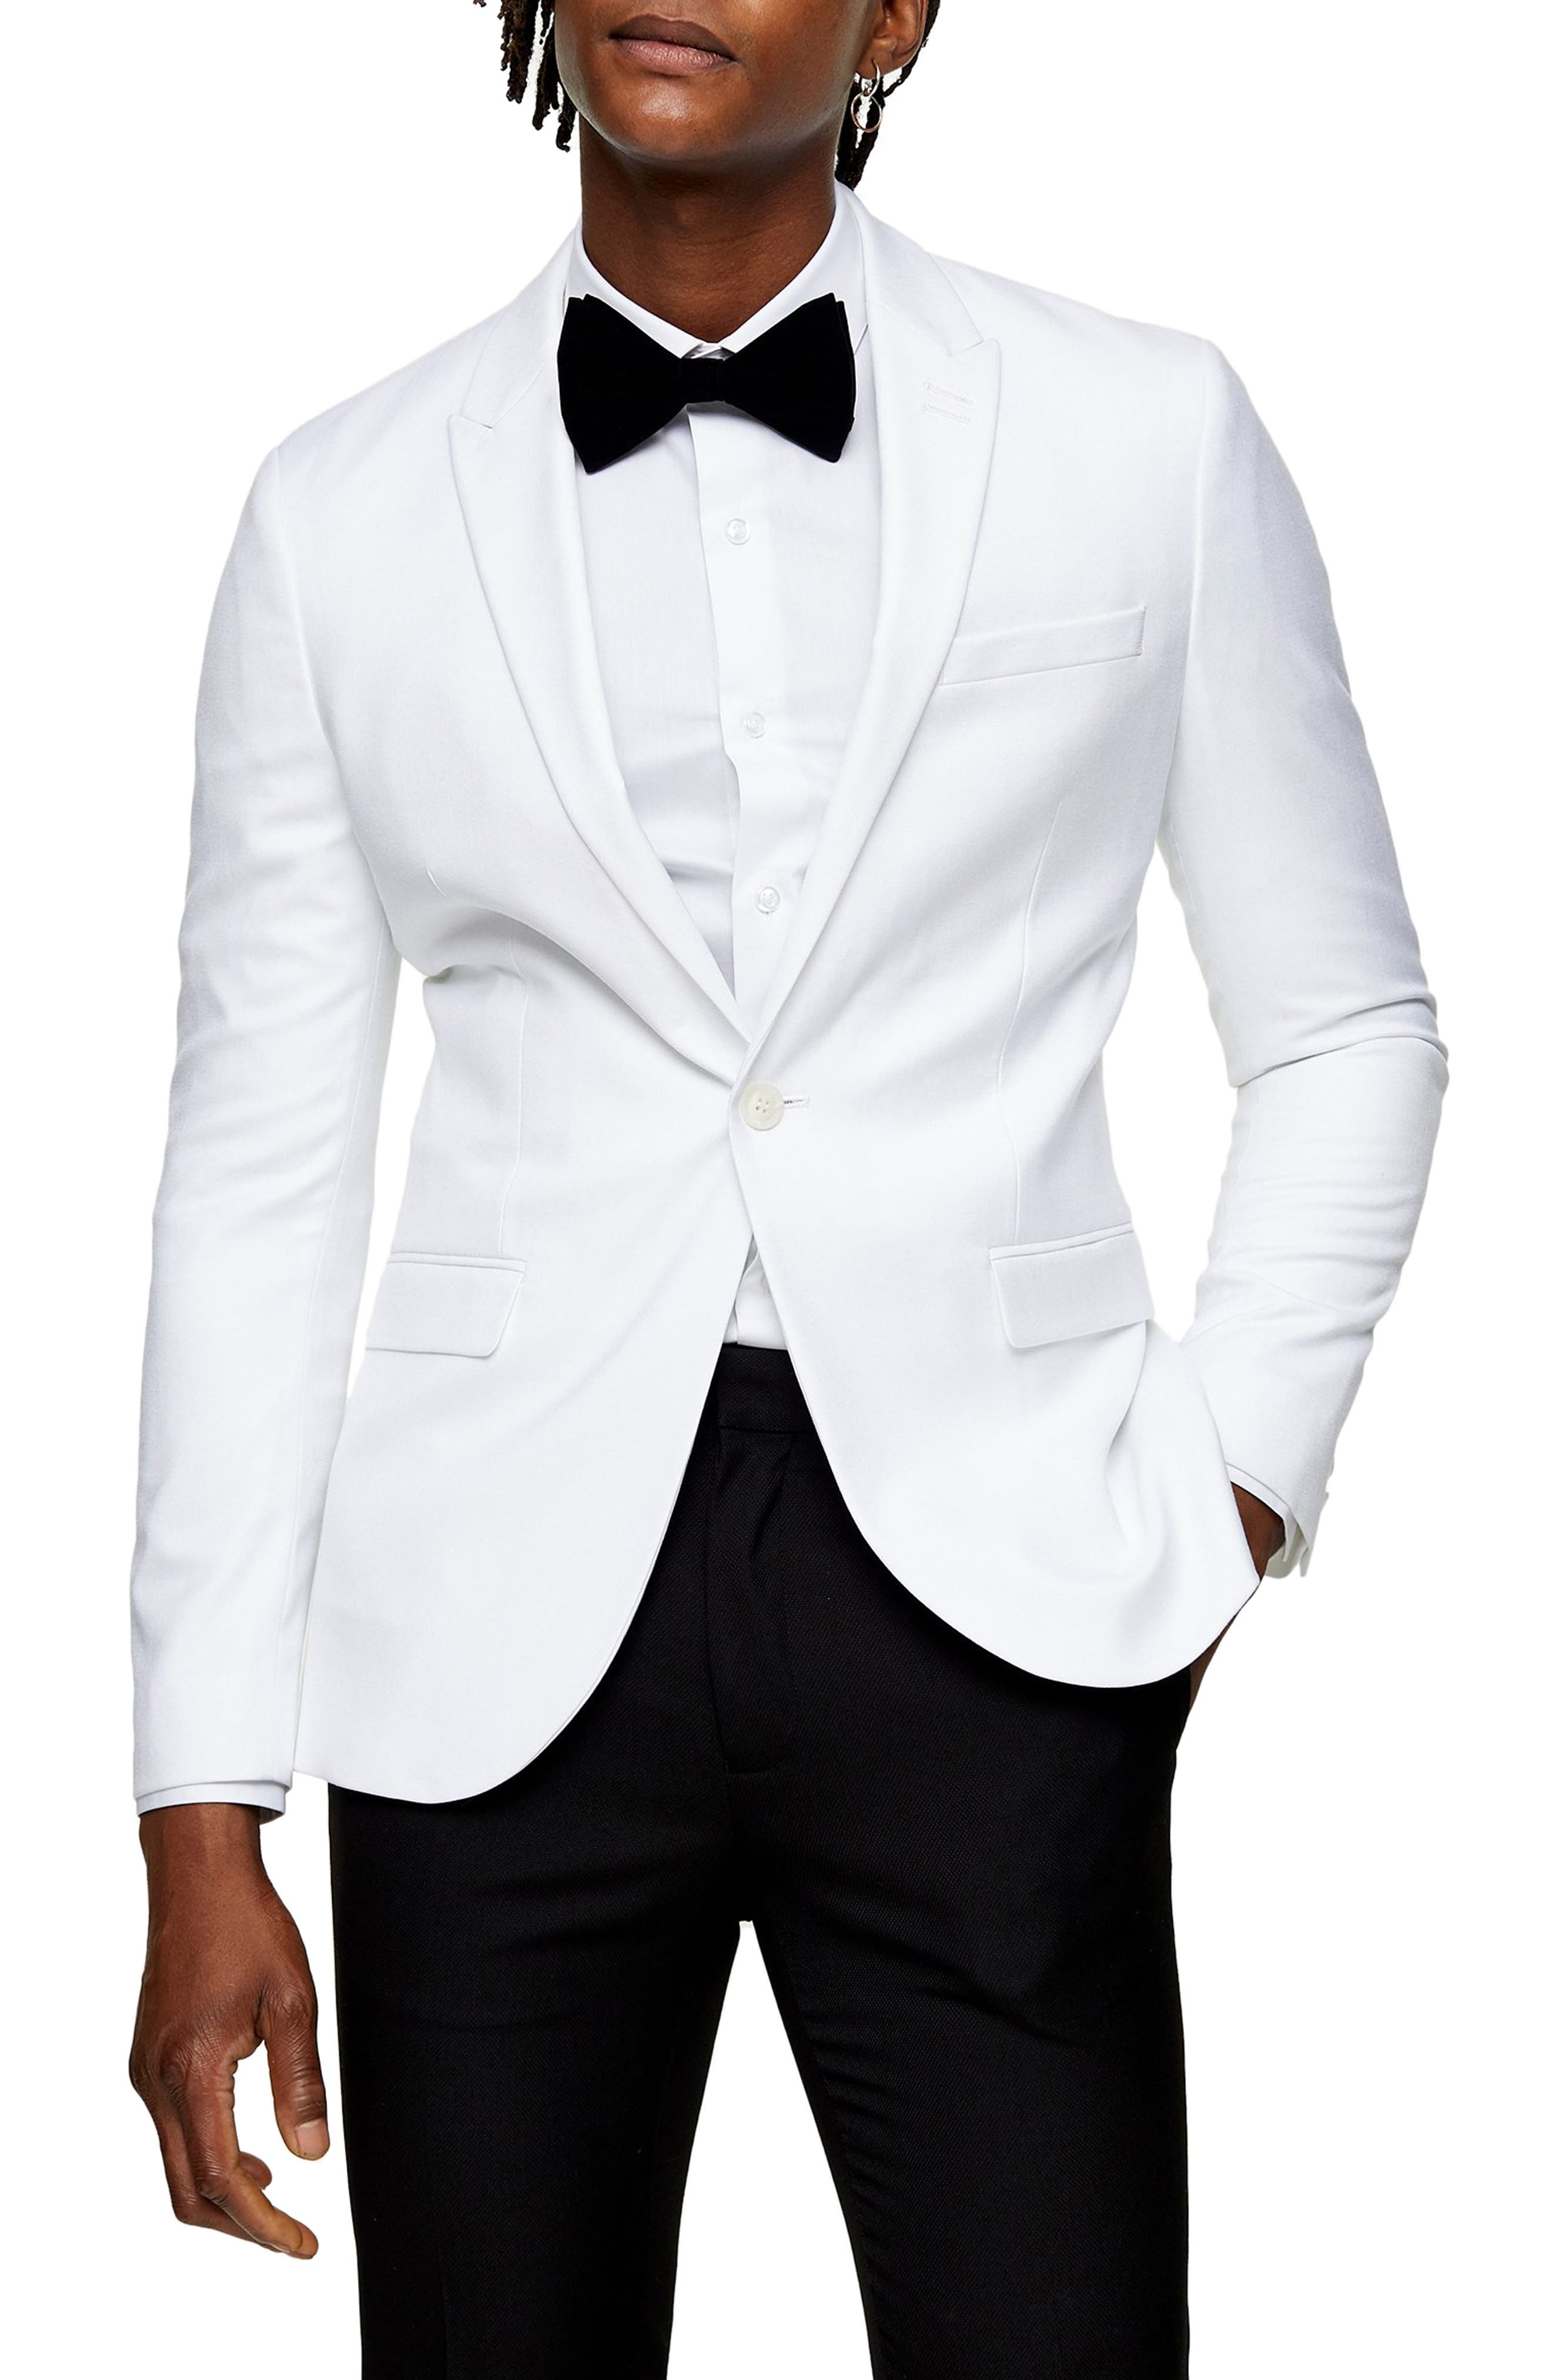 New Vintage Tuxedos, Tailcoats, Morning Suits, Dinner Jackets Mens Topman Dax Skinny Fit Blazer Size 46R - White $105.30 AT vintagedancer.com